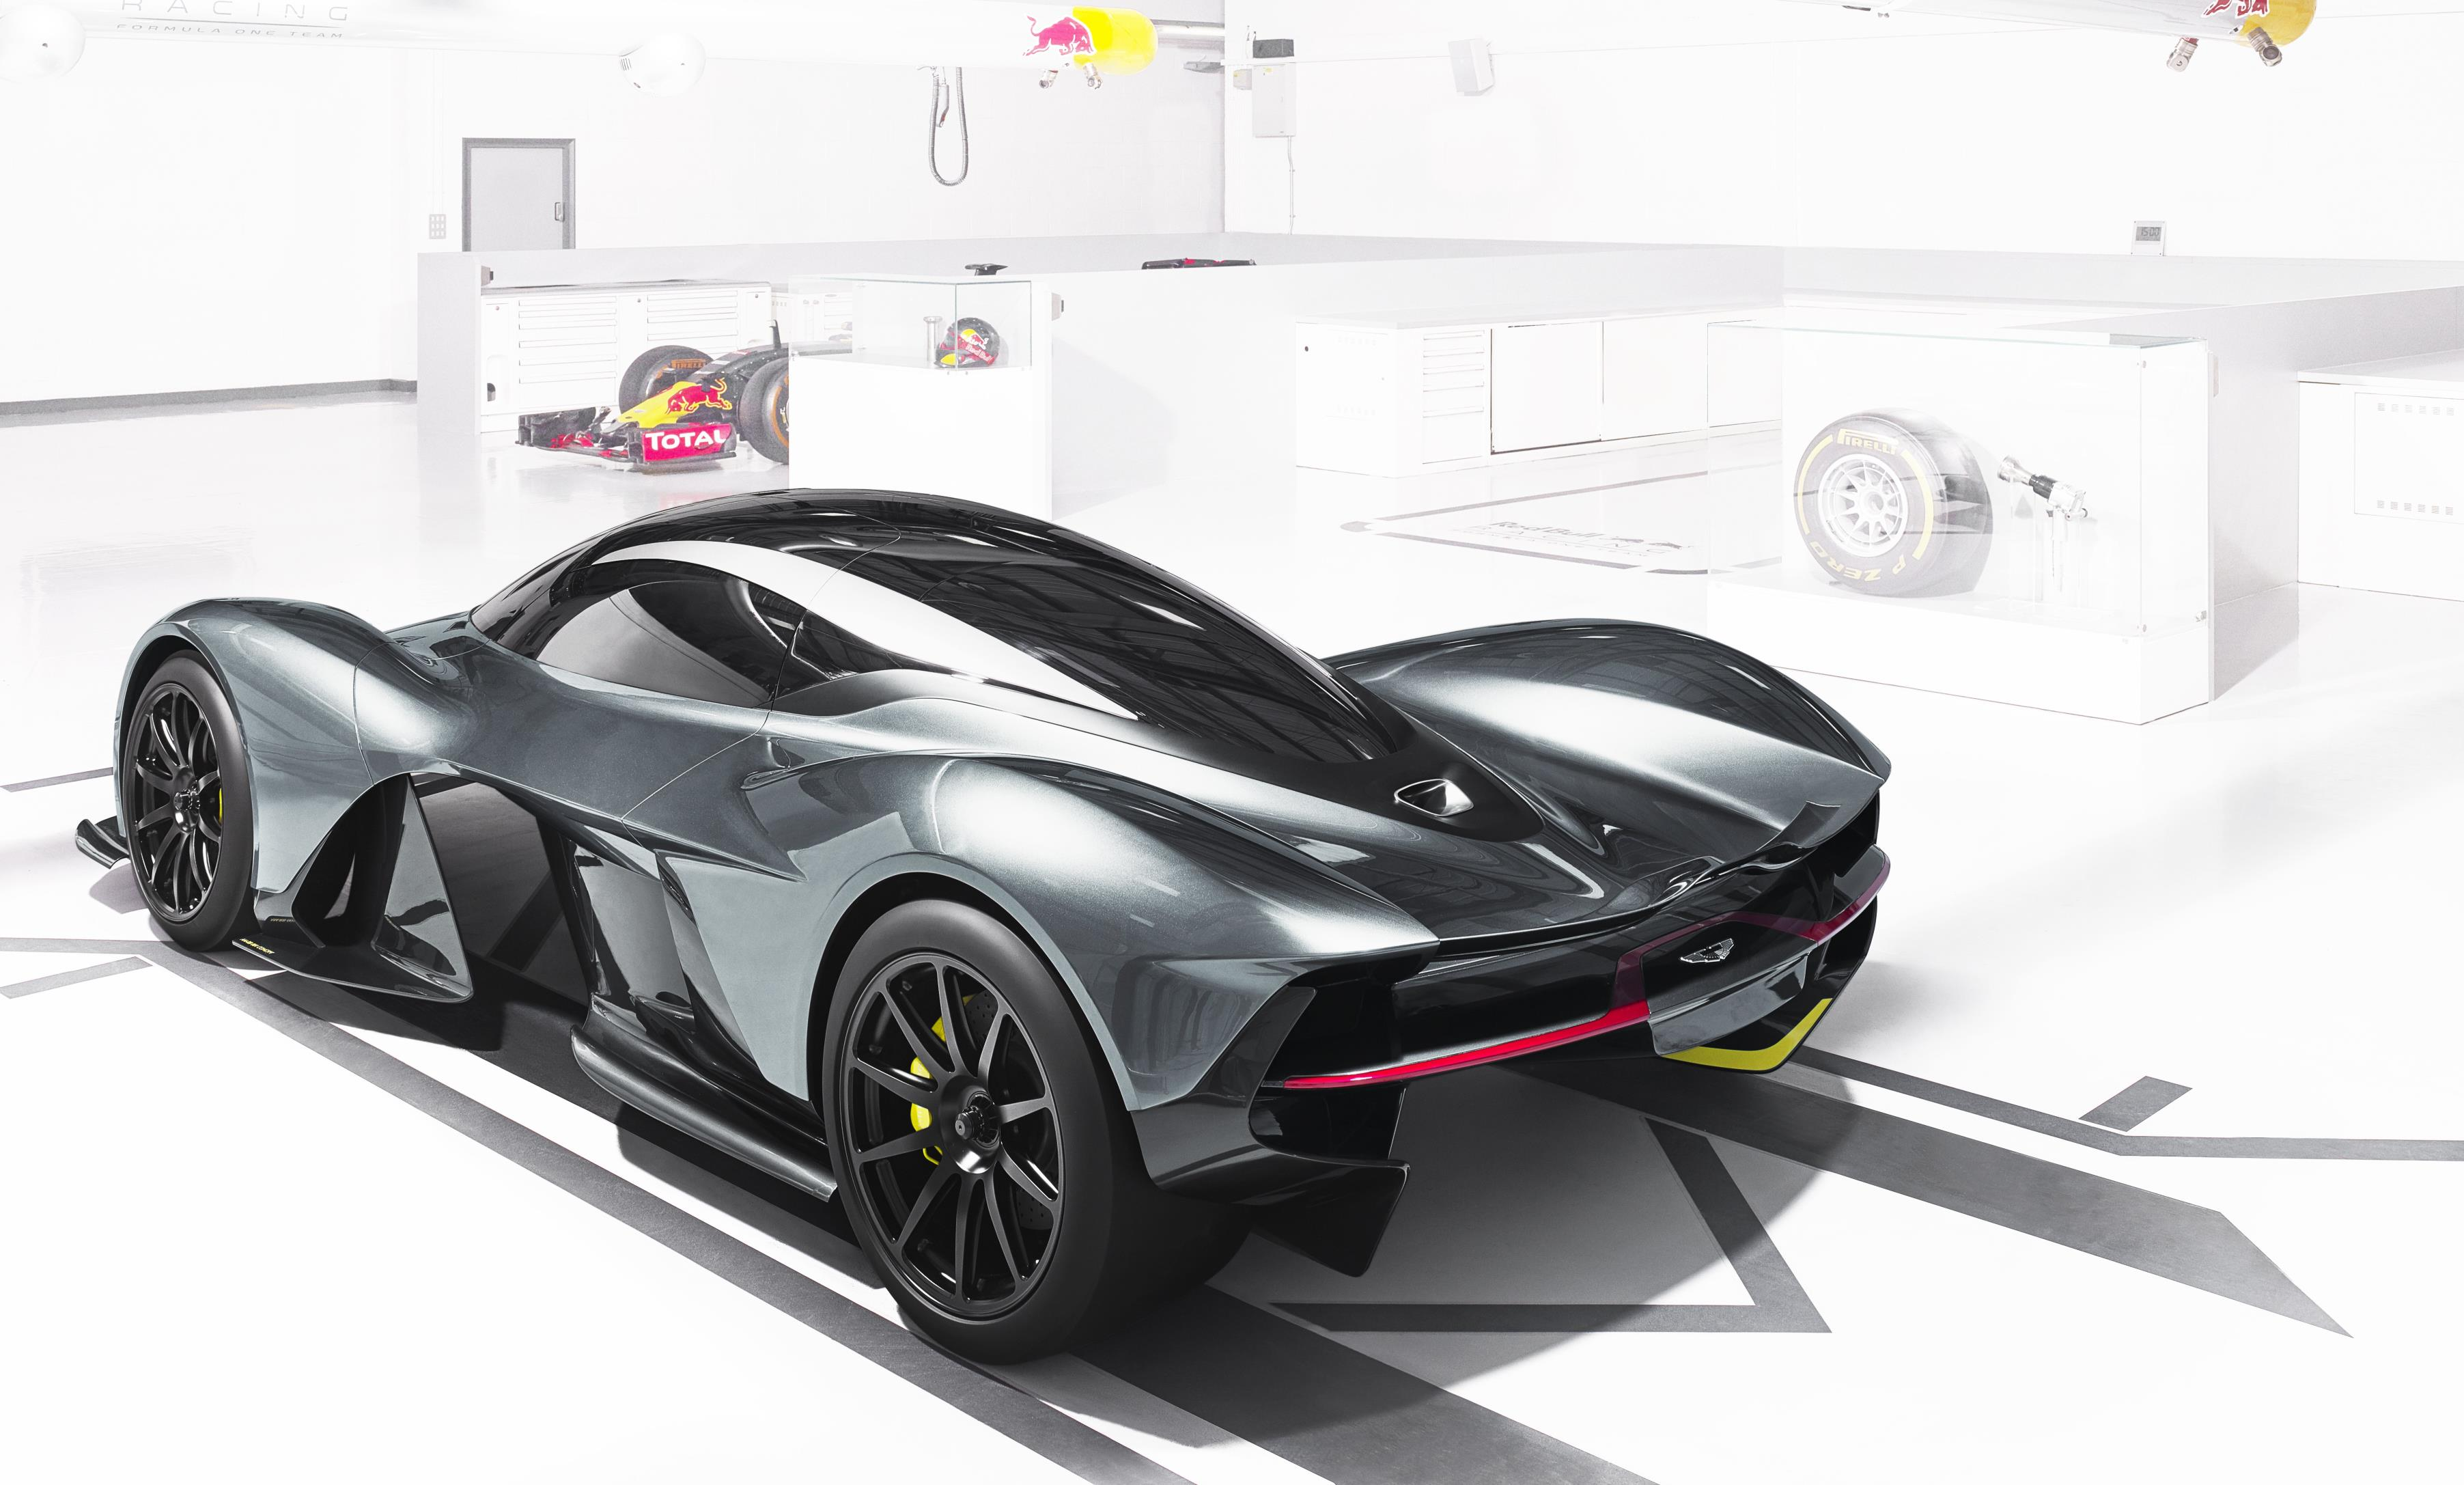 2020 aston martin vanquish could be the automaker's mid-engine